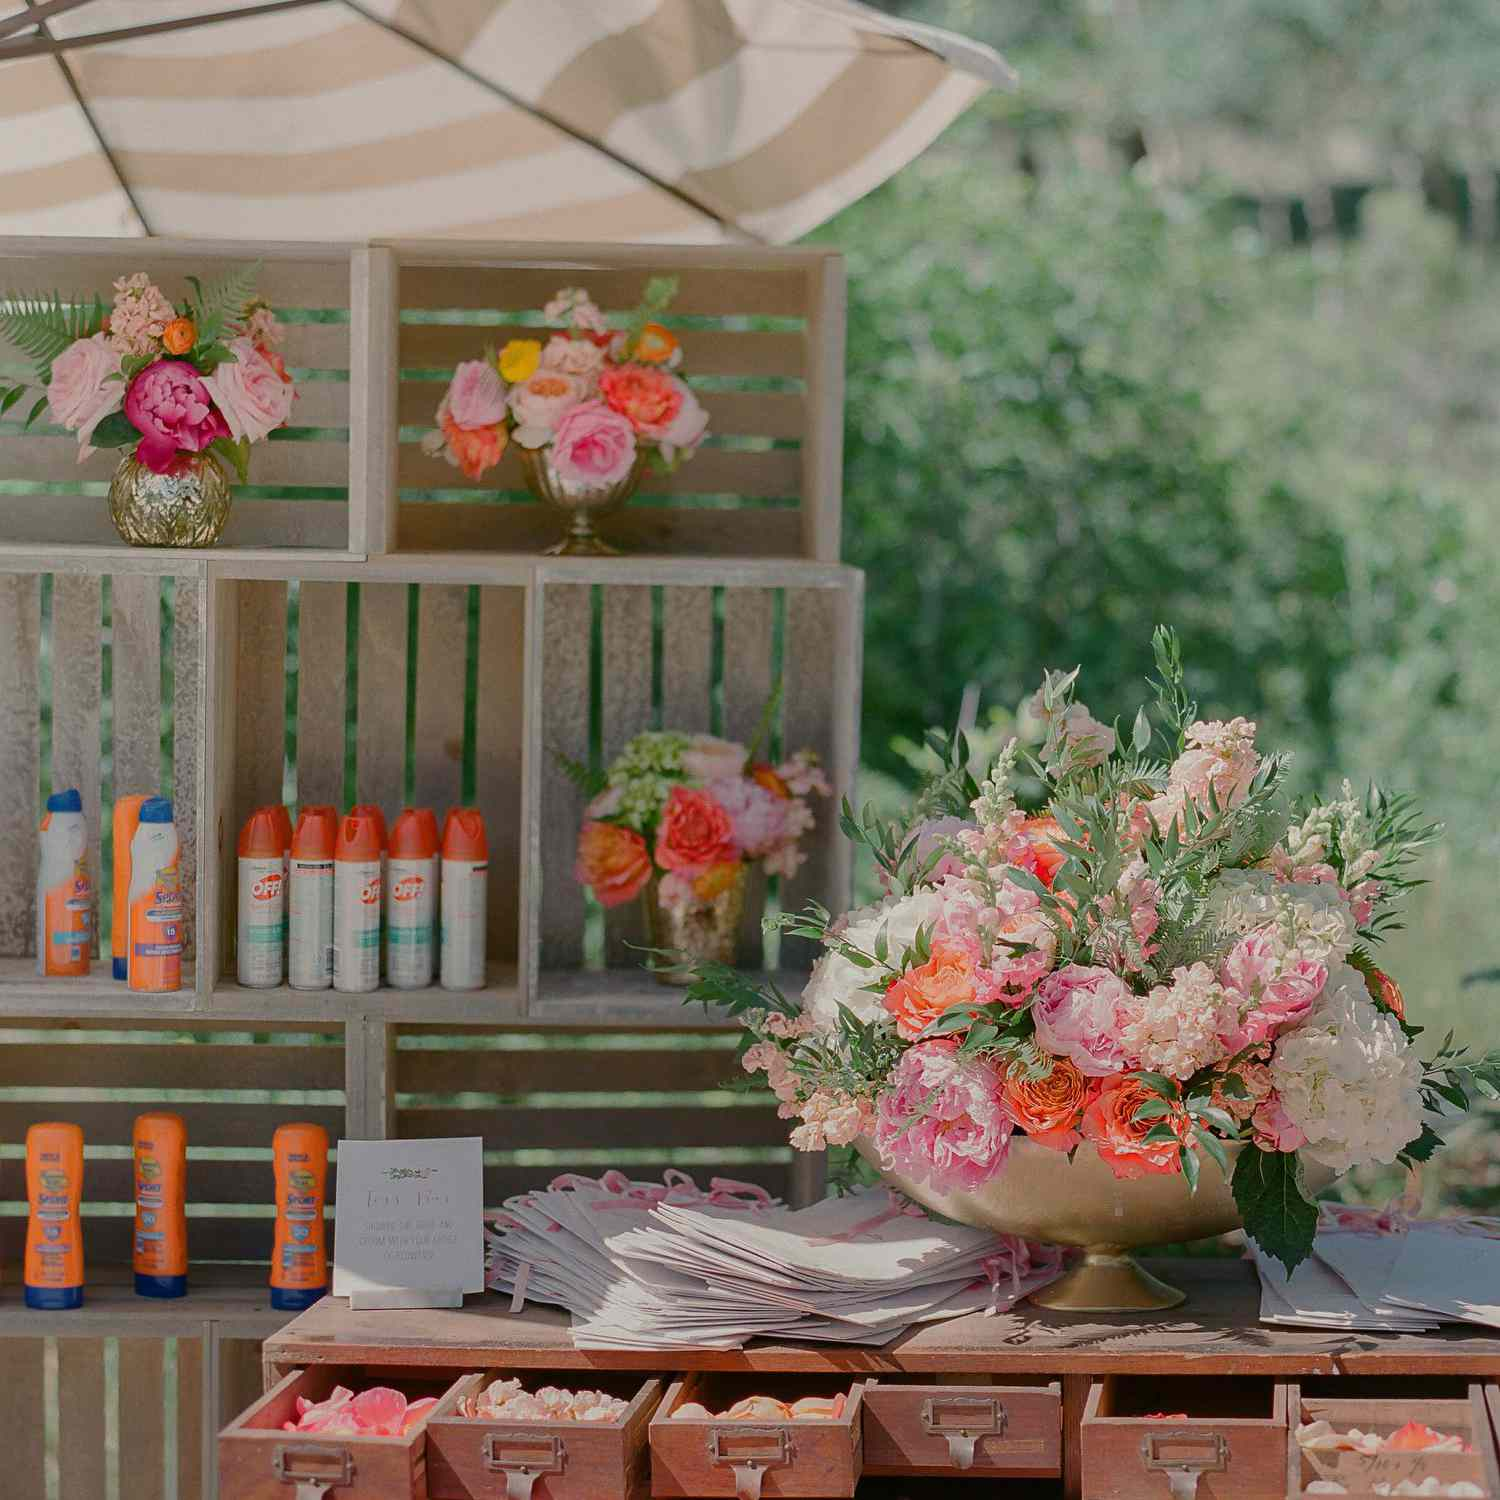 Station at a wedding with flower petal bar and wooden crates with sunscreen and bug spray